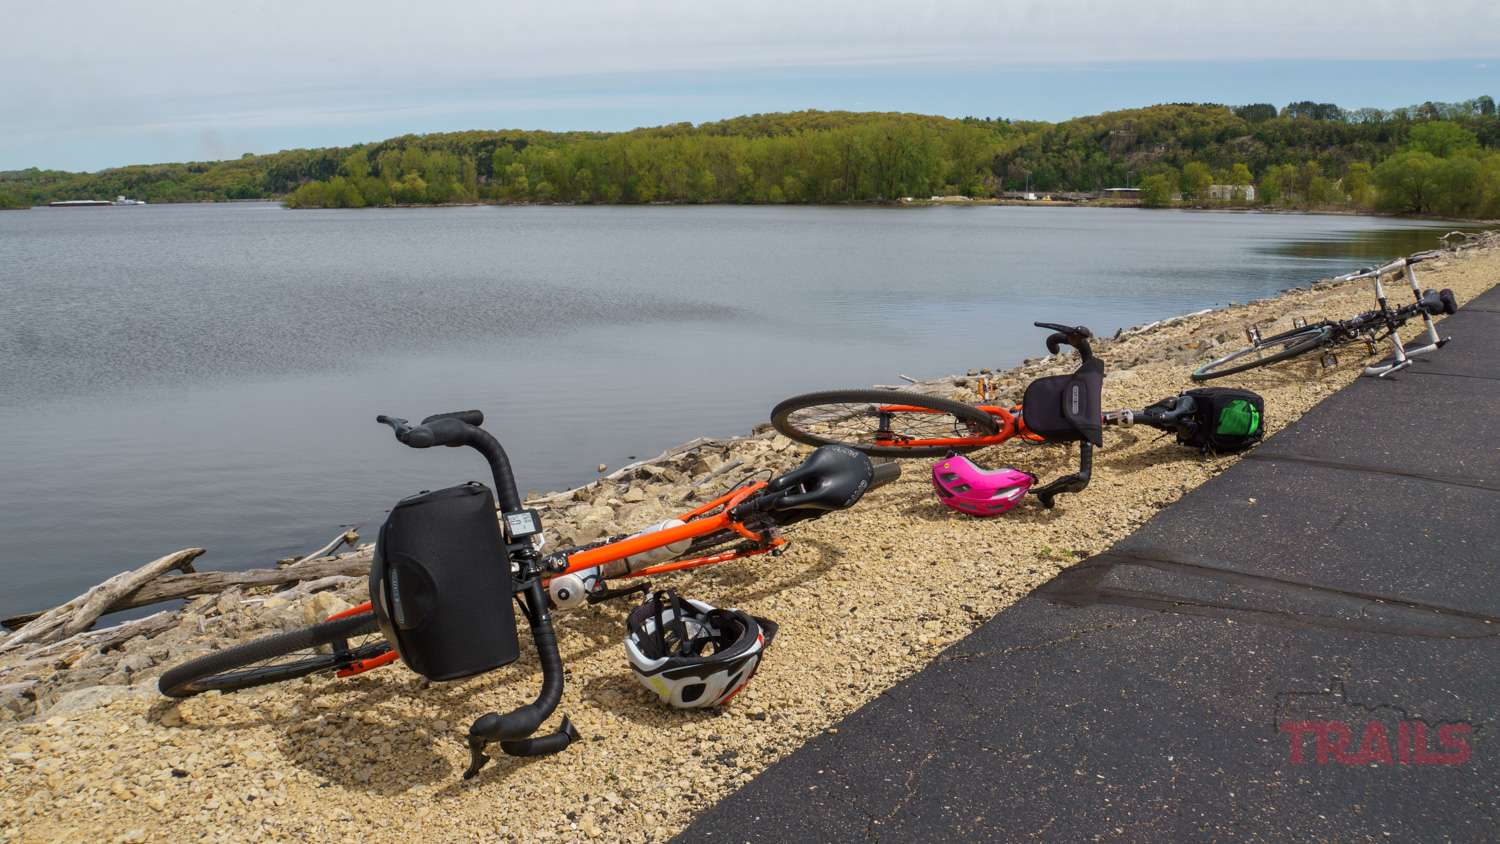 Three bicycles are lying on their sides along a paved trail across a river